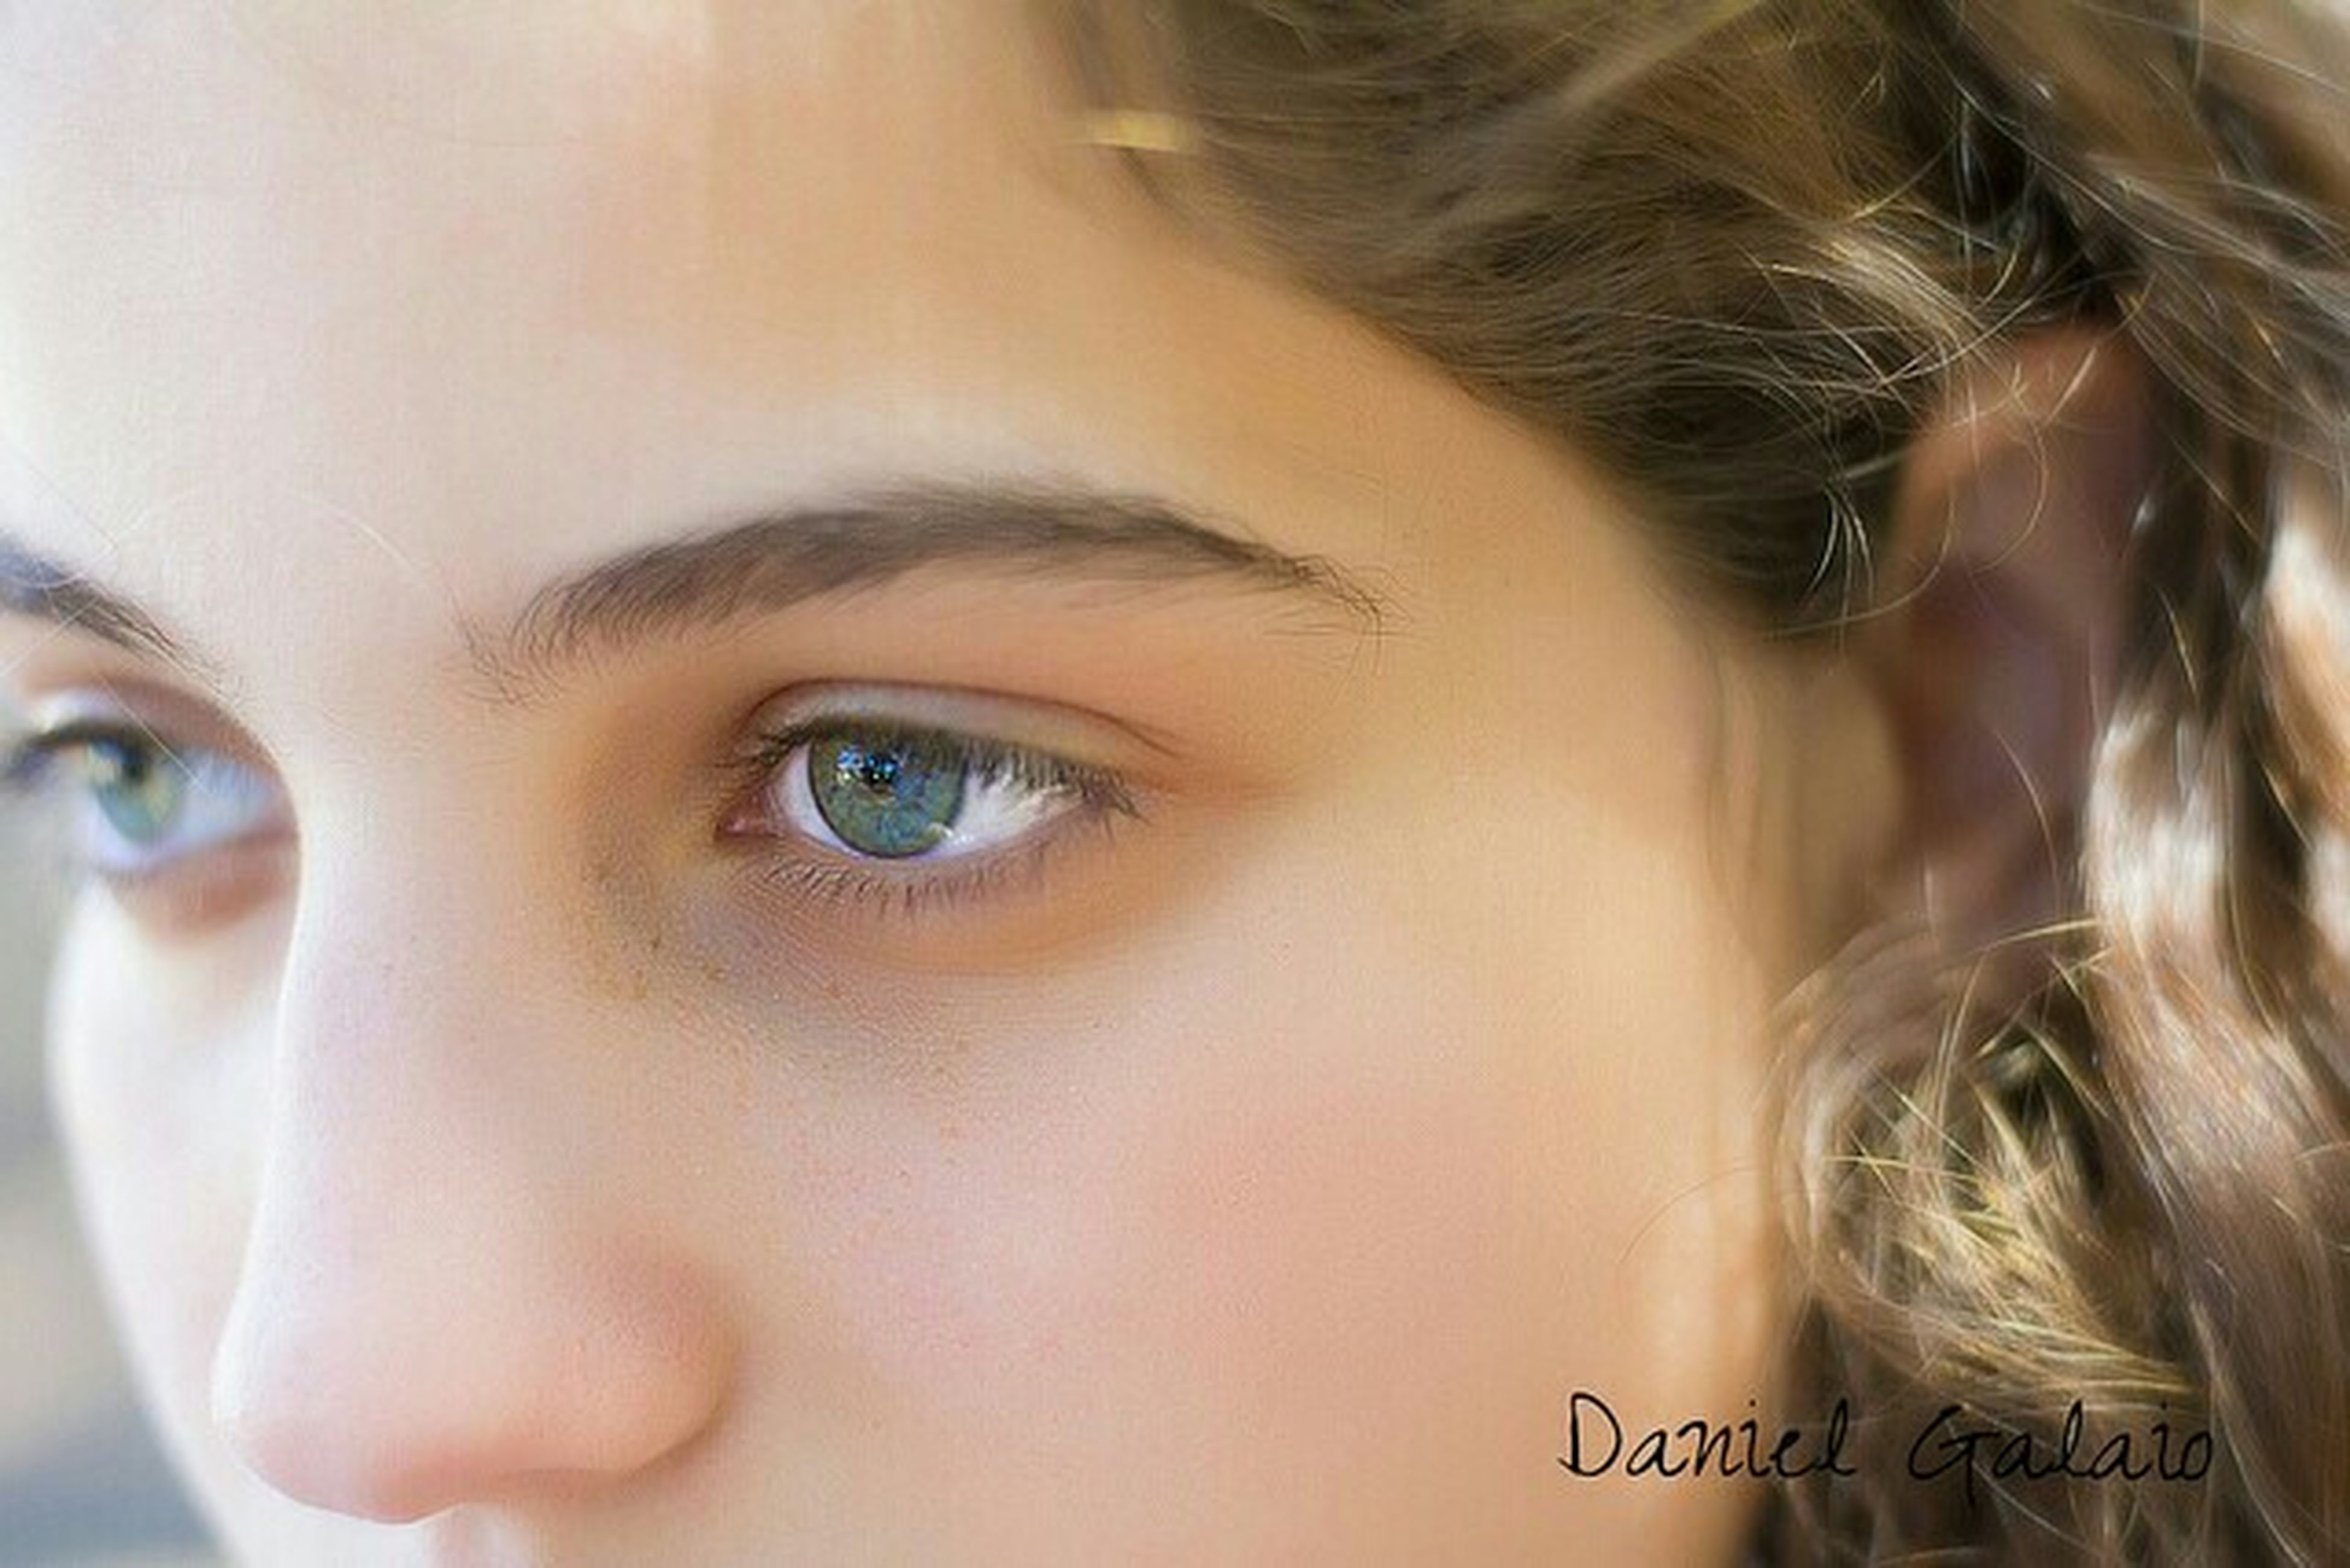 headshot, person, close-up, lifestyles, human face, indoors, young adult, young women, looking at camera, leisure activity, childhood, portrait, head and shoulders, front view, girls, innocence, focus on foreground